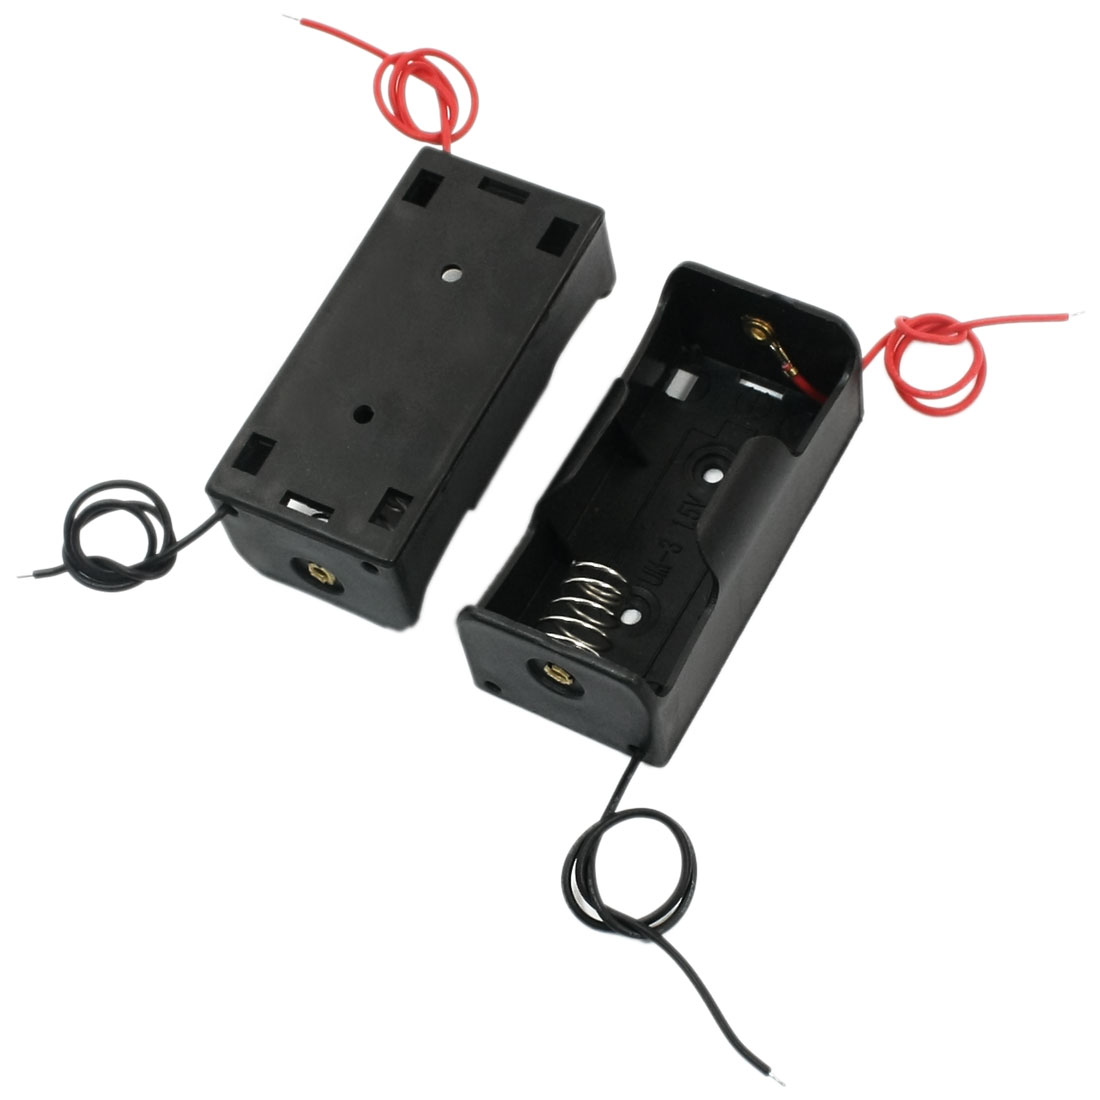 2 Pcs Two Wire Spring Loaded Black Plastic Shell 1 x C 1.5V Battery Holders Cases Cell Storage Boxes Containers